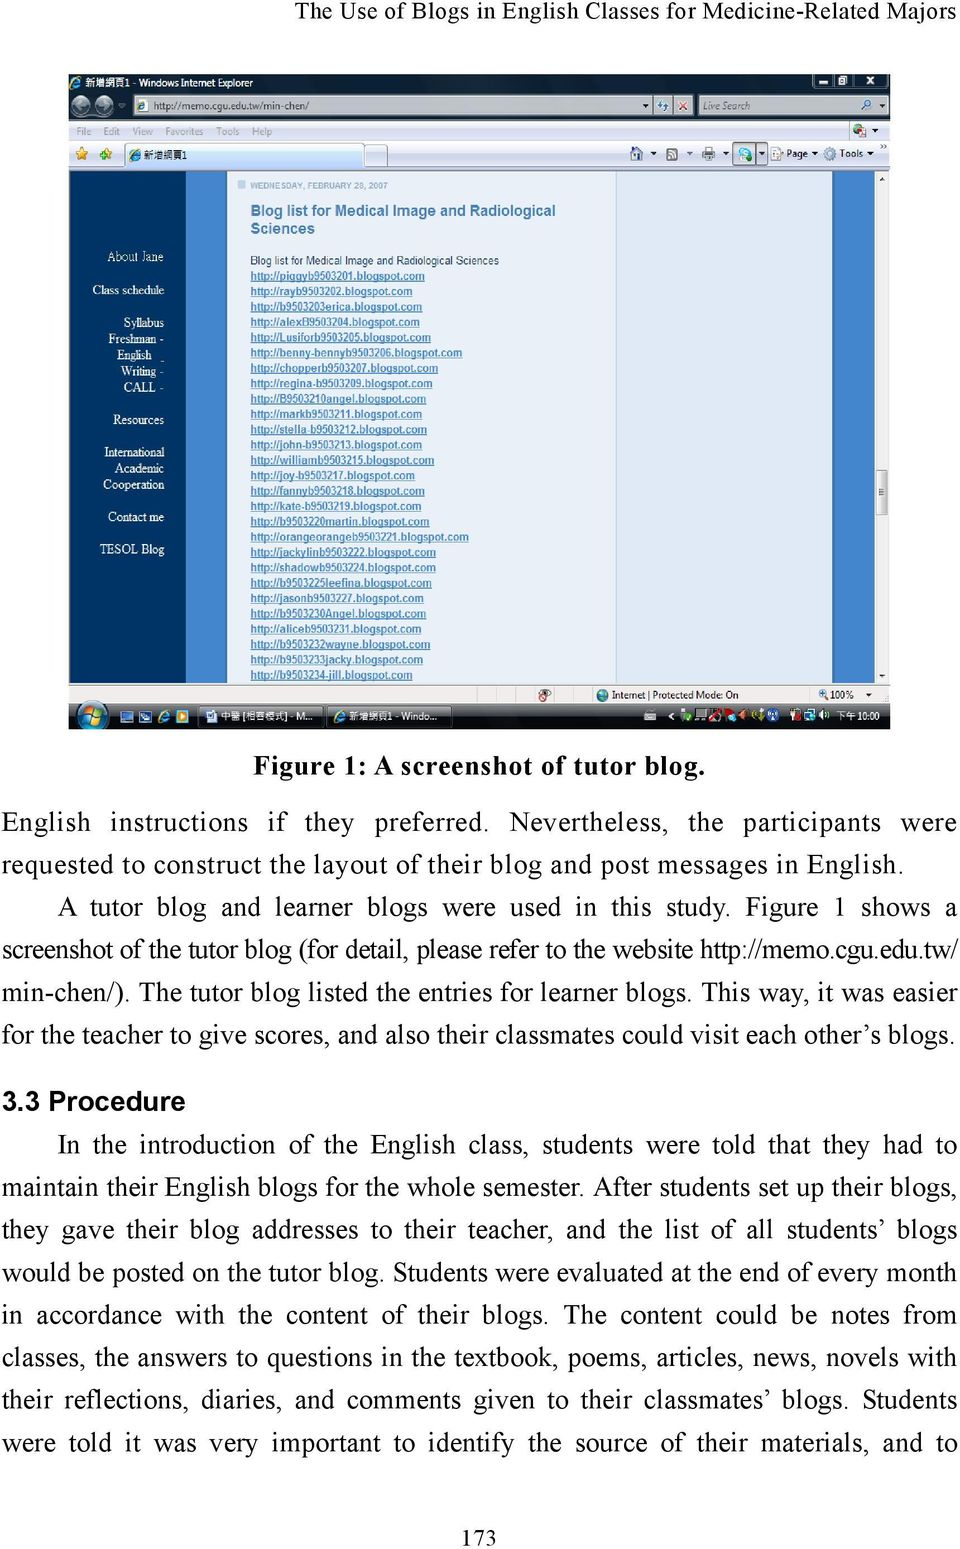 The Use of Blogs in English Classes for Medicine-Related Majors - PDF